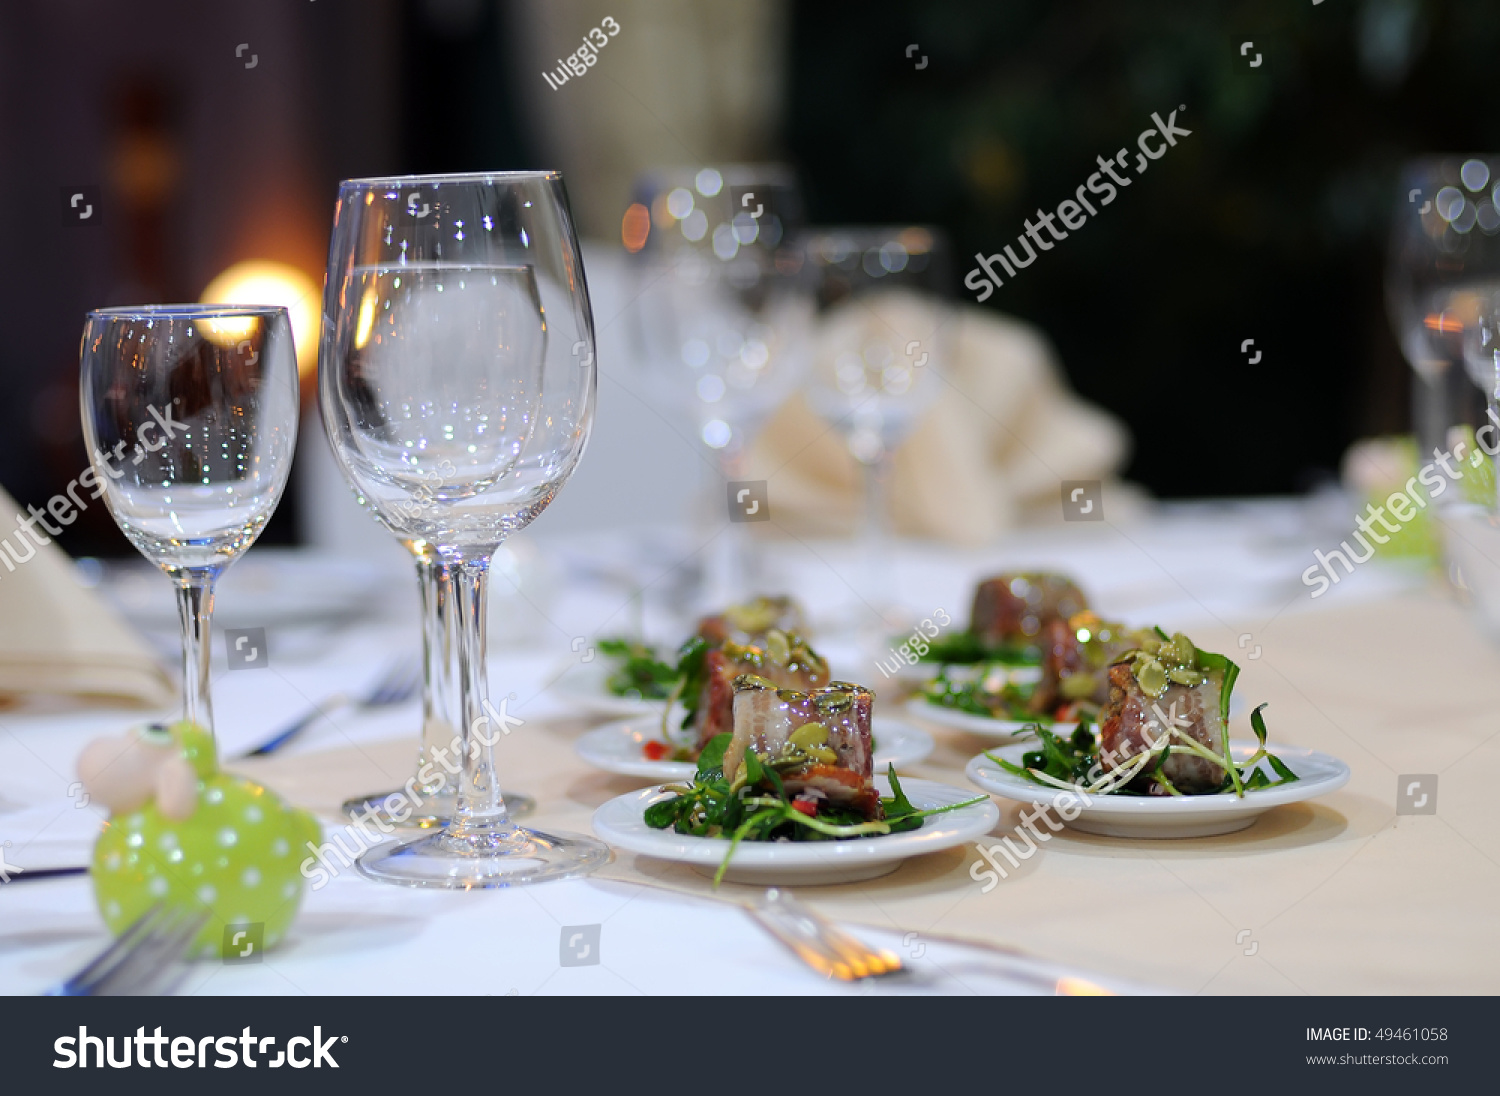 Elegant dinner table setting - A Part Of Elegant Table Setting In Luxury Restaurant Close Up Of Wineglasses And Snack